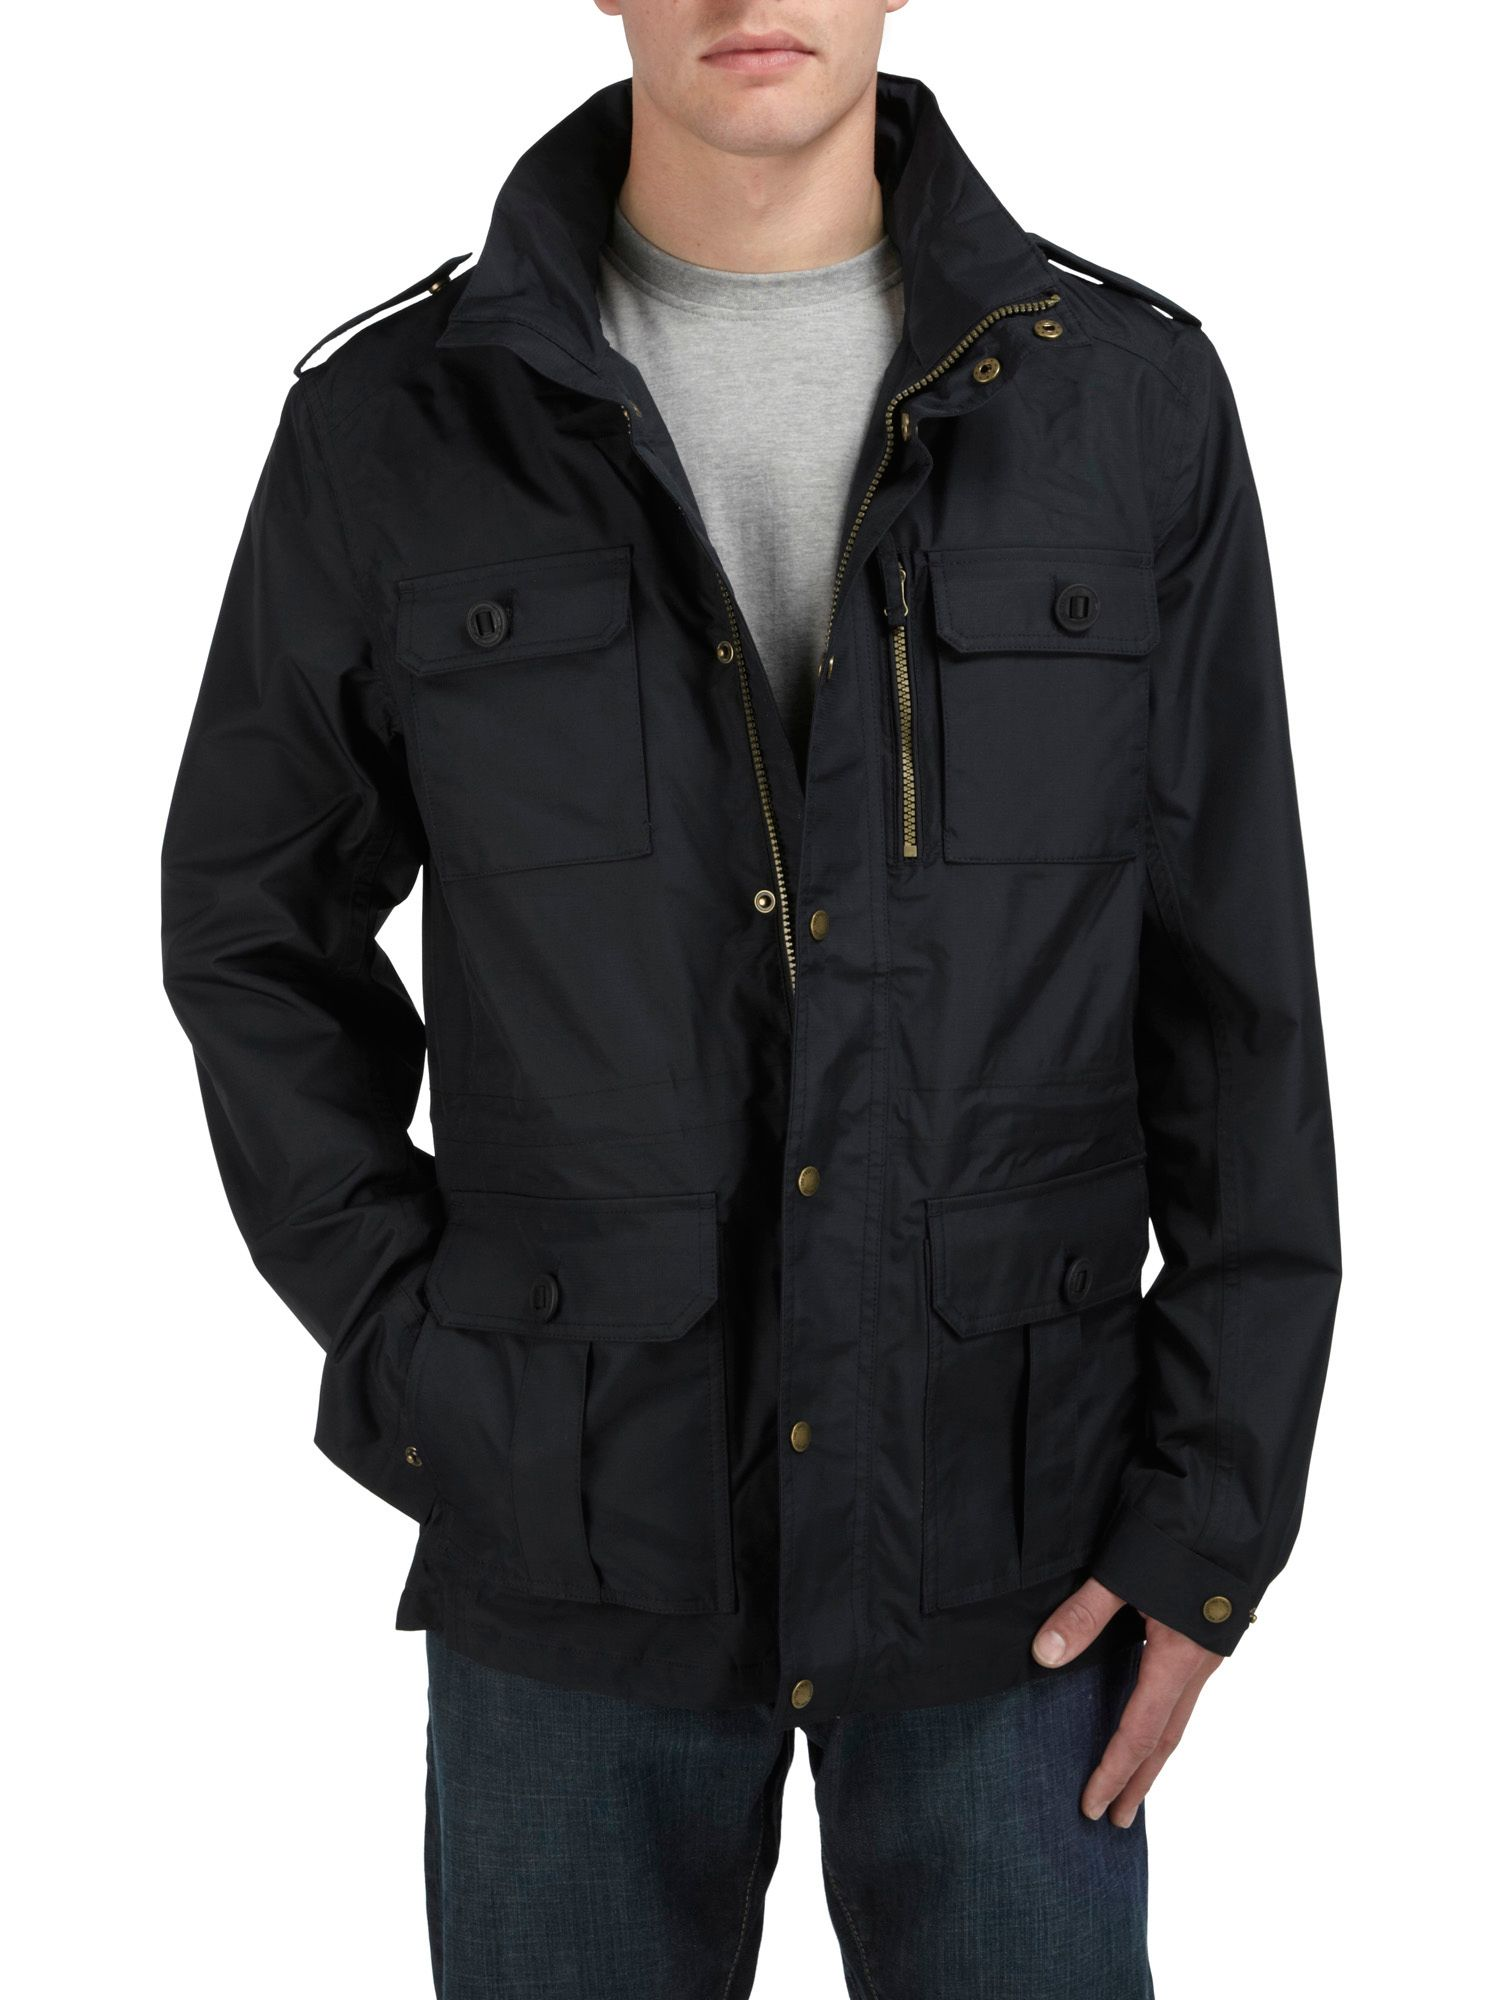 Monza milatex hooded jacket